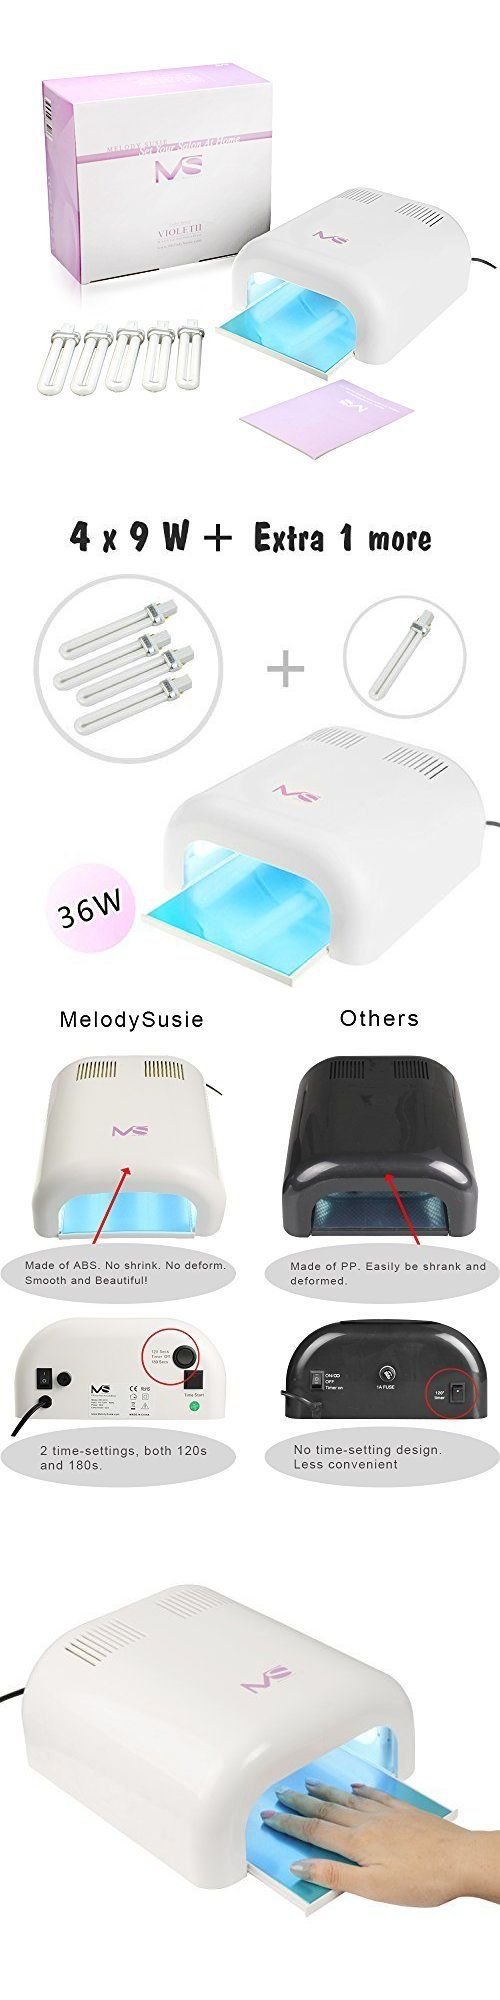 Nail Dryers and UV LED Lamps: 36W Nail Dryer Uv Lamp Light For Acrylic Gelish And Shellac Curing Spa Equipment BUY IT NOW ONLY: $35.99